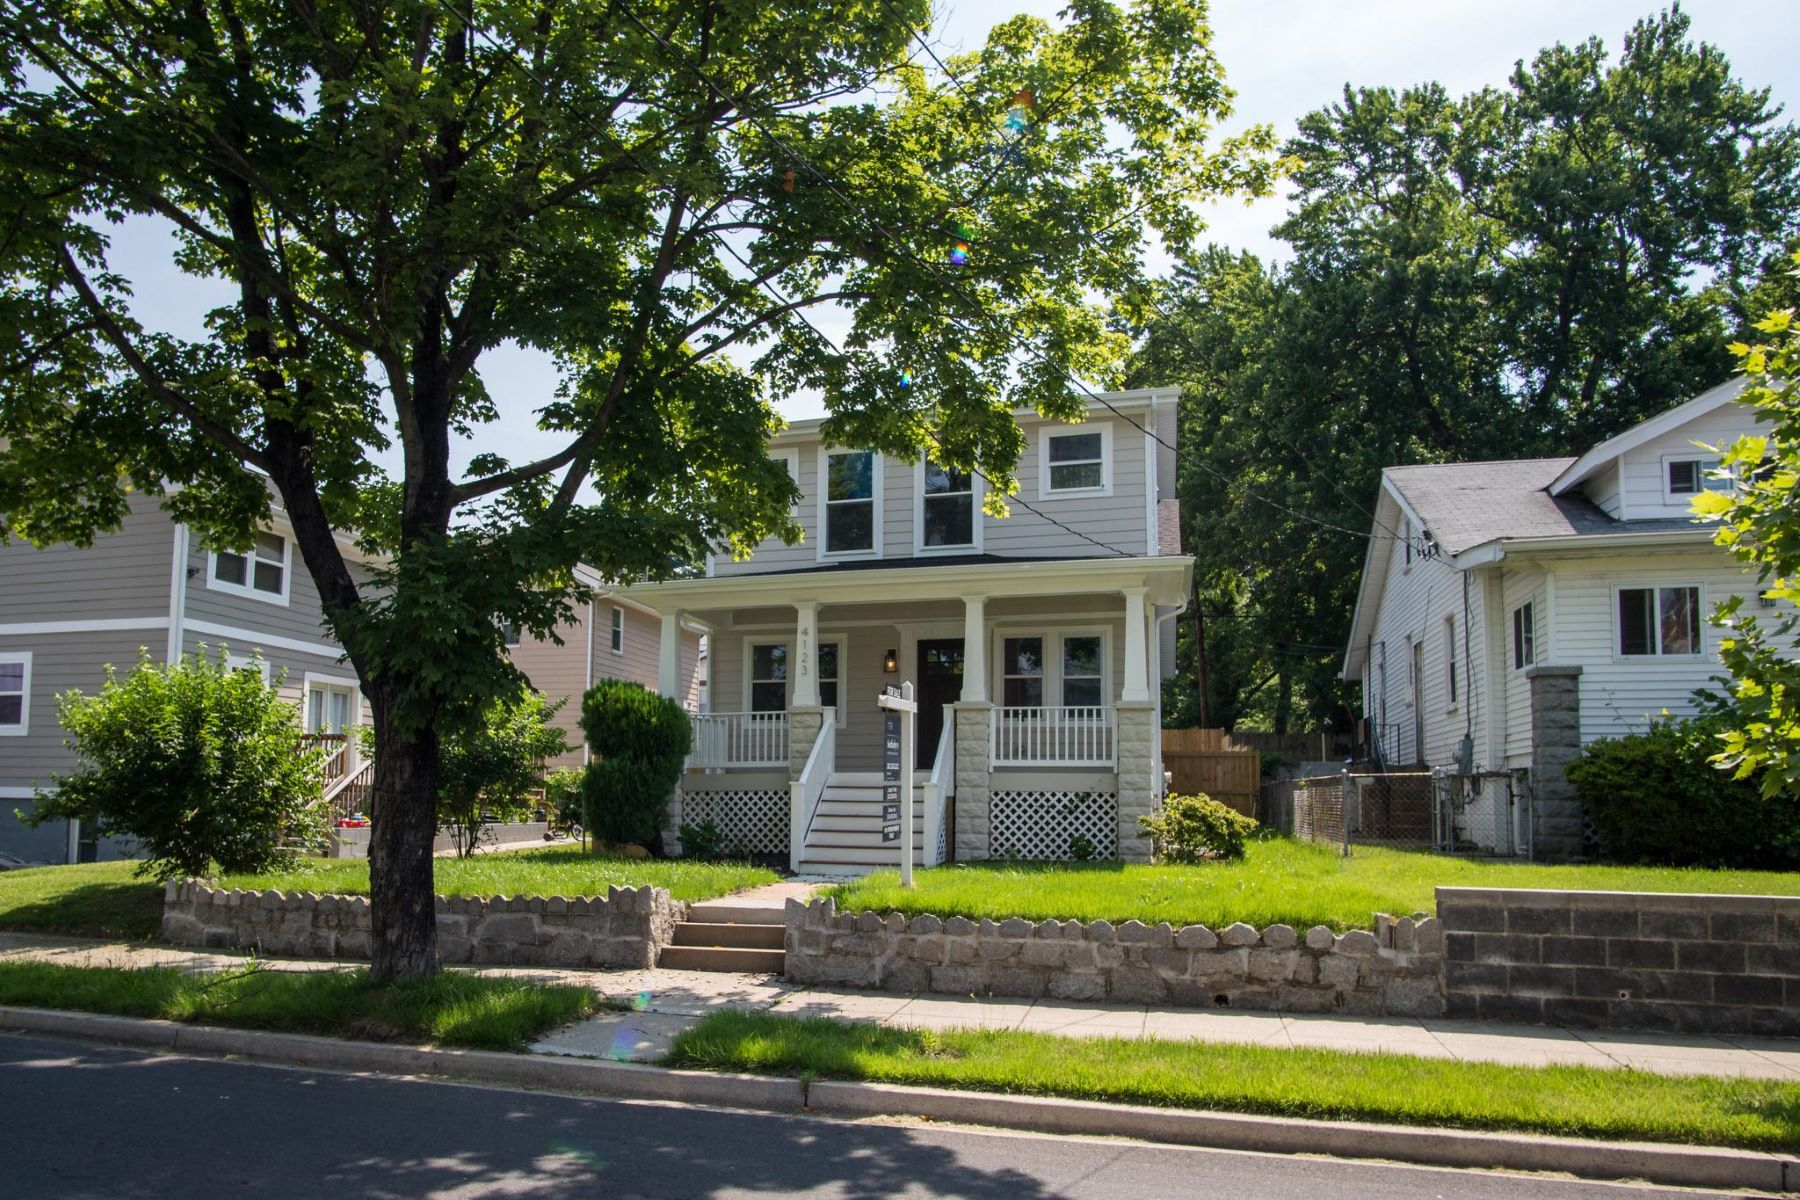 Single Family Home for Sale at 4123 22nd St Ne 4123 22nd St Ne Washington, District Of Columbia 20018 United States